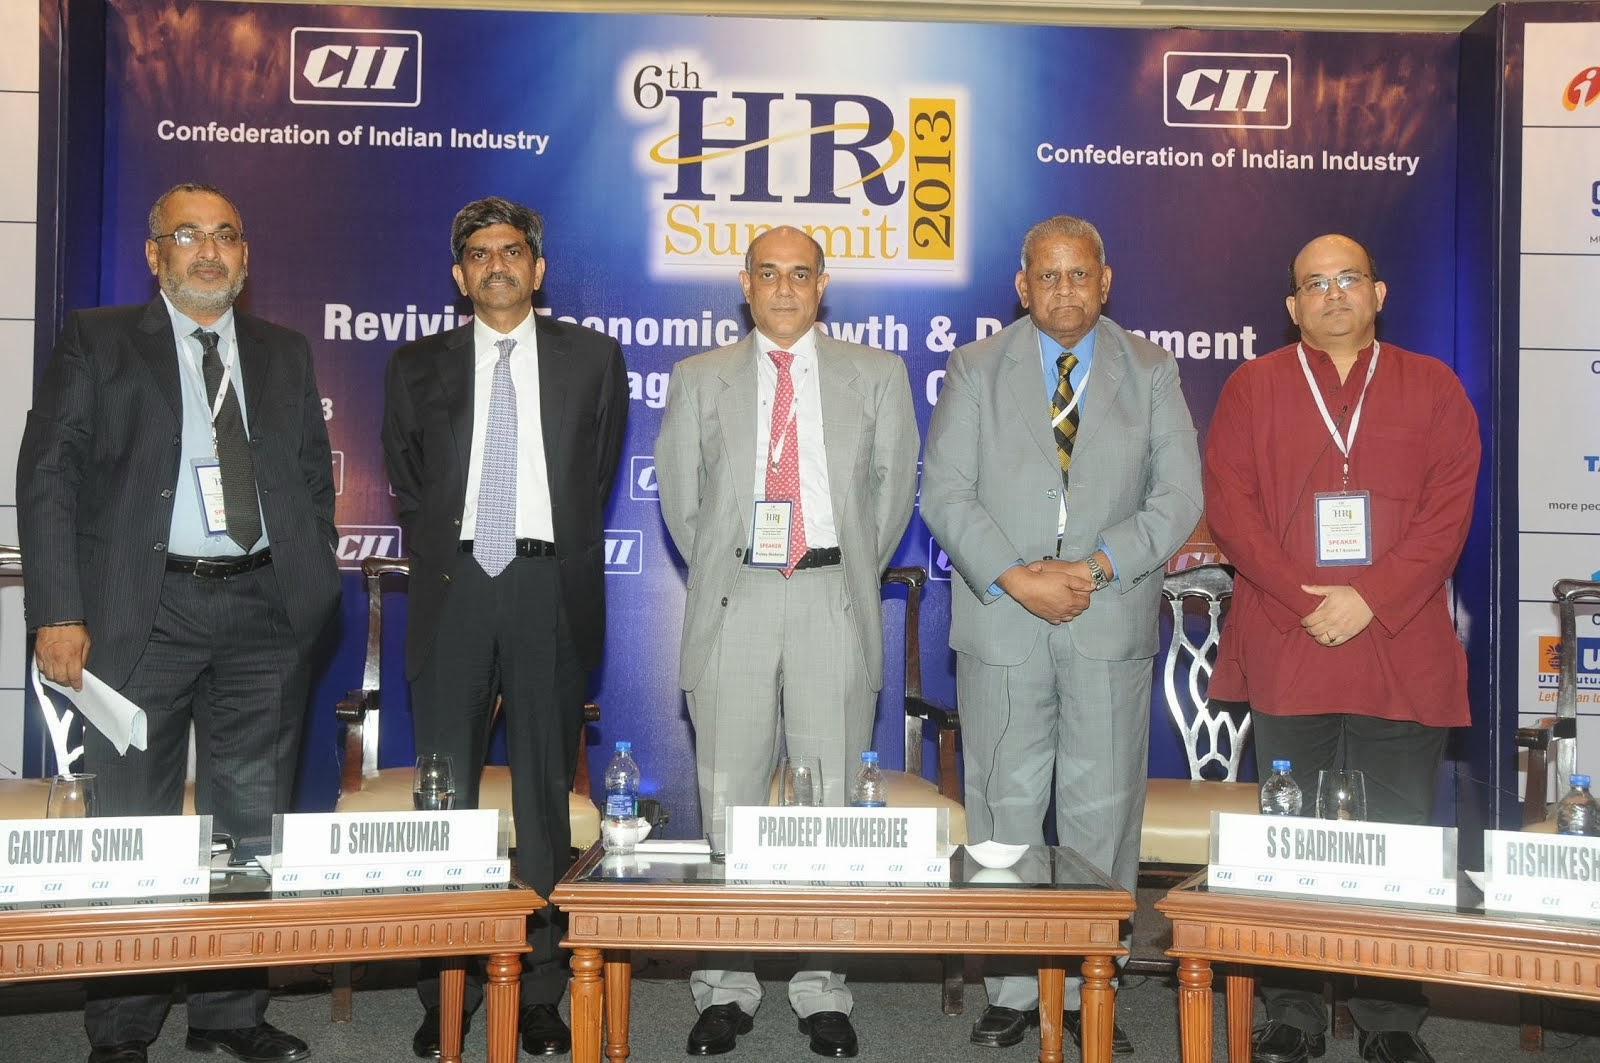 At CII HR Summit